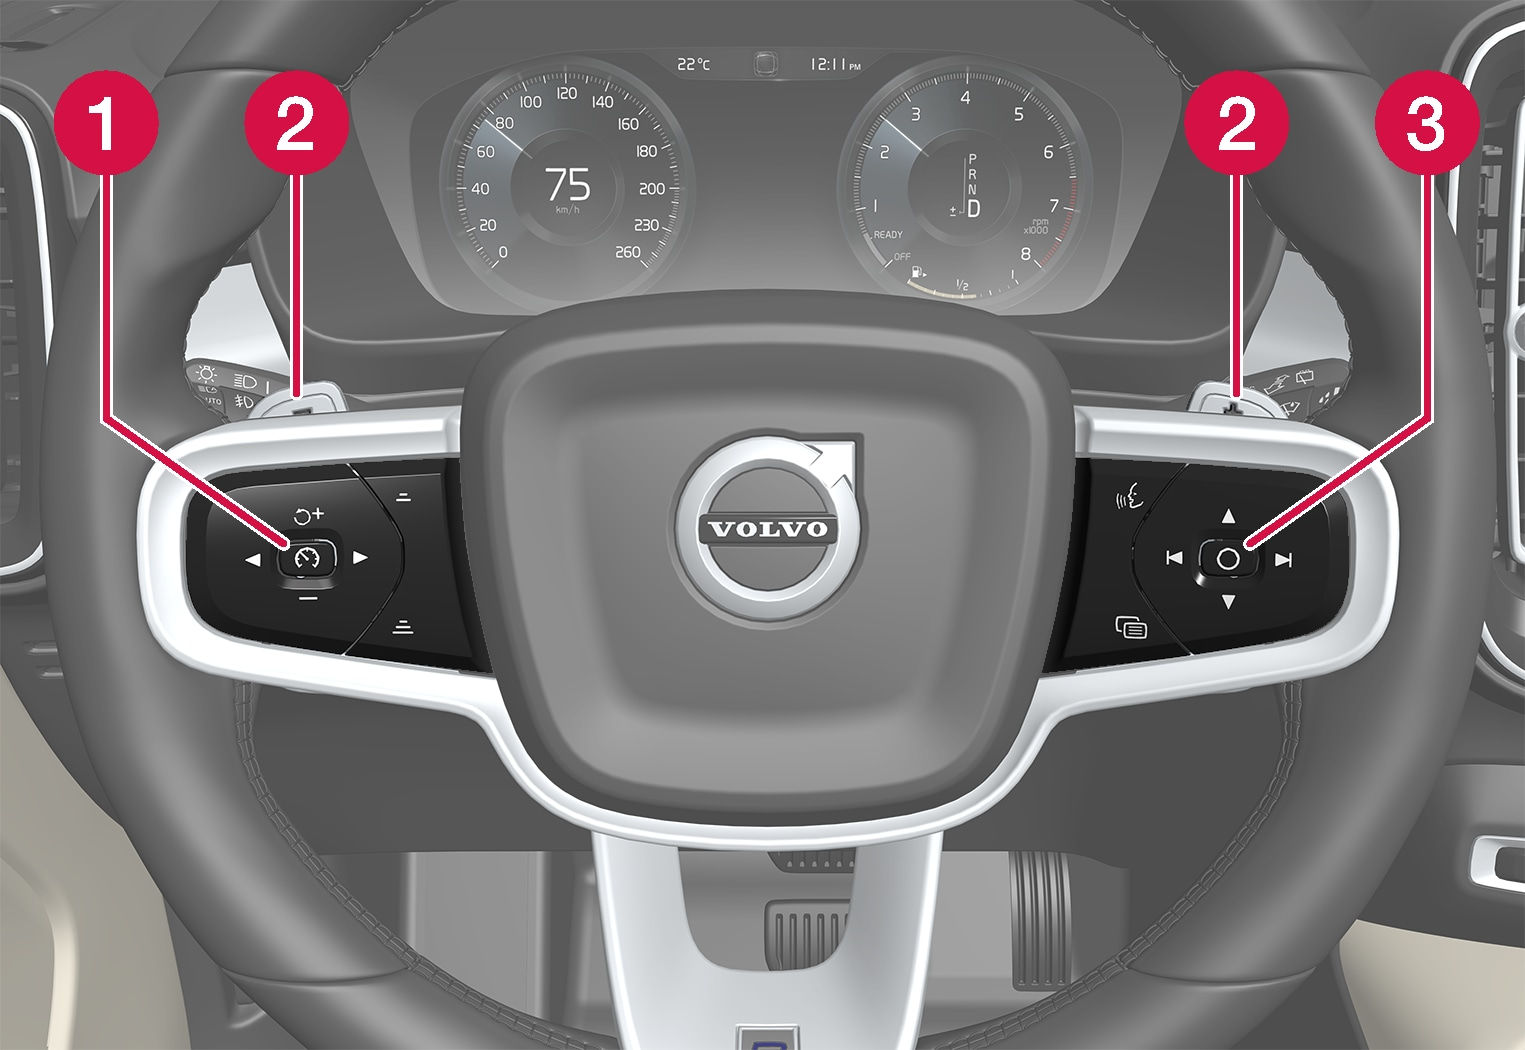 P6-XC40-Steering wheel with numbers